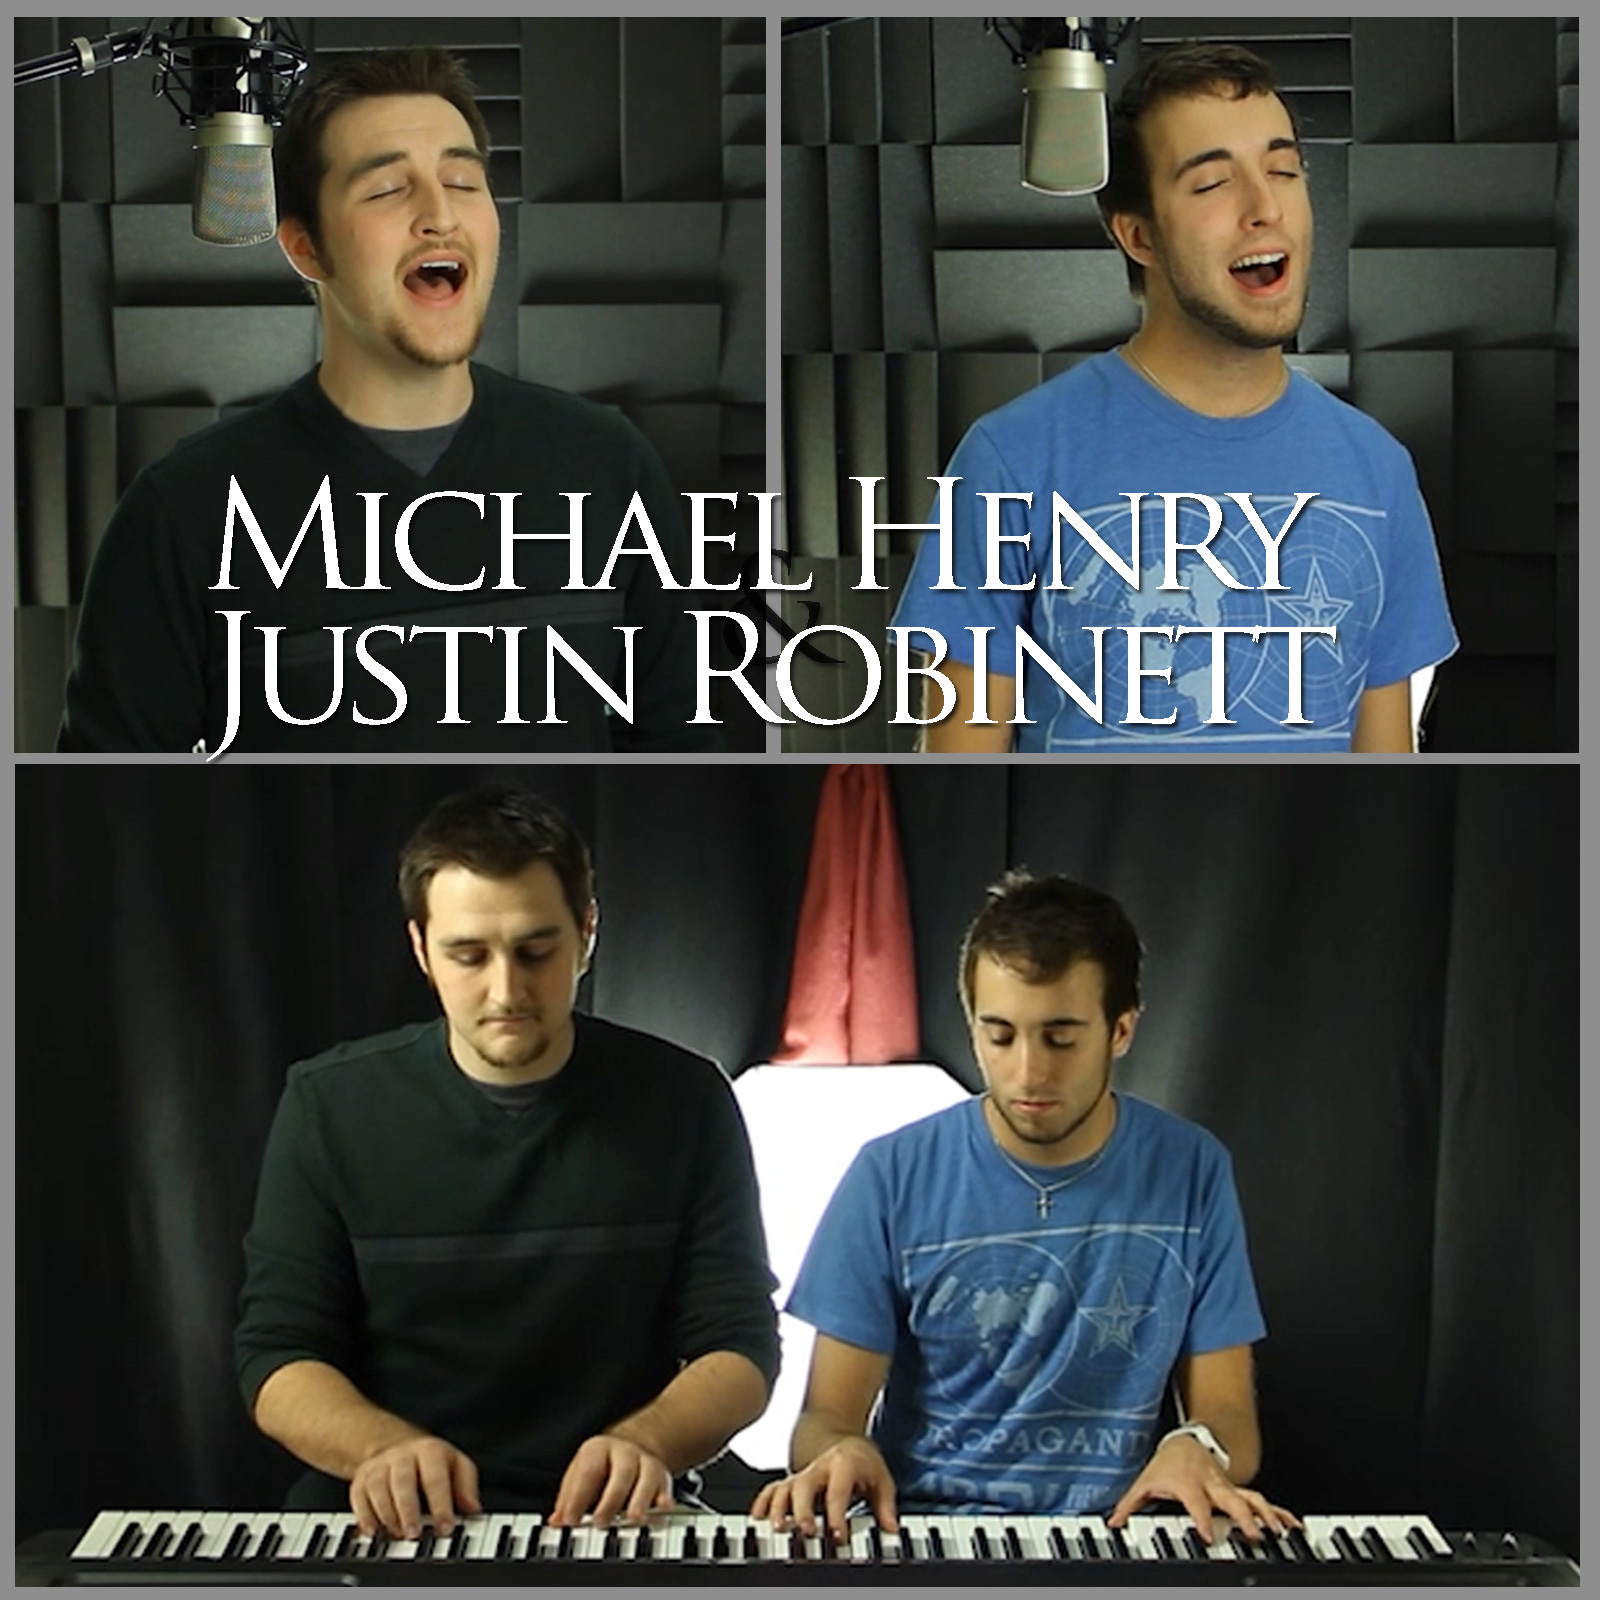 Posting their music videos to YouTube began as a side project for Henry and Robinett, but now it may lead to a viable career option for both.